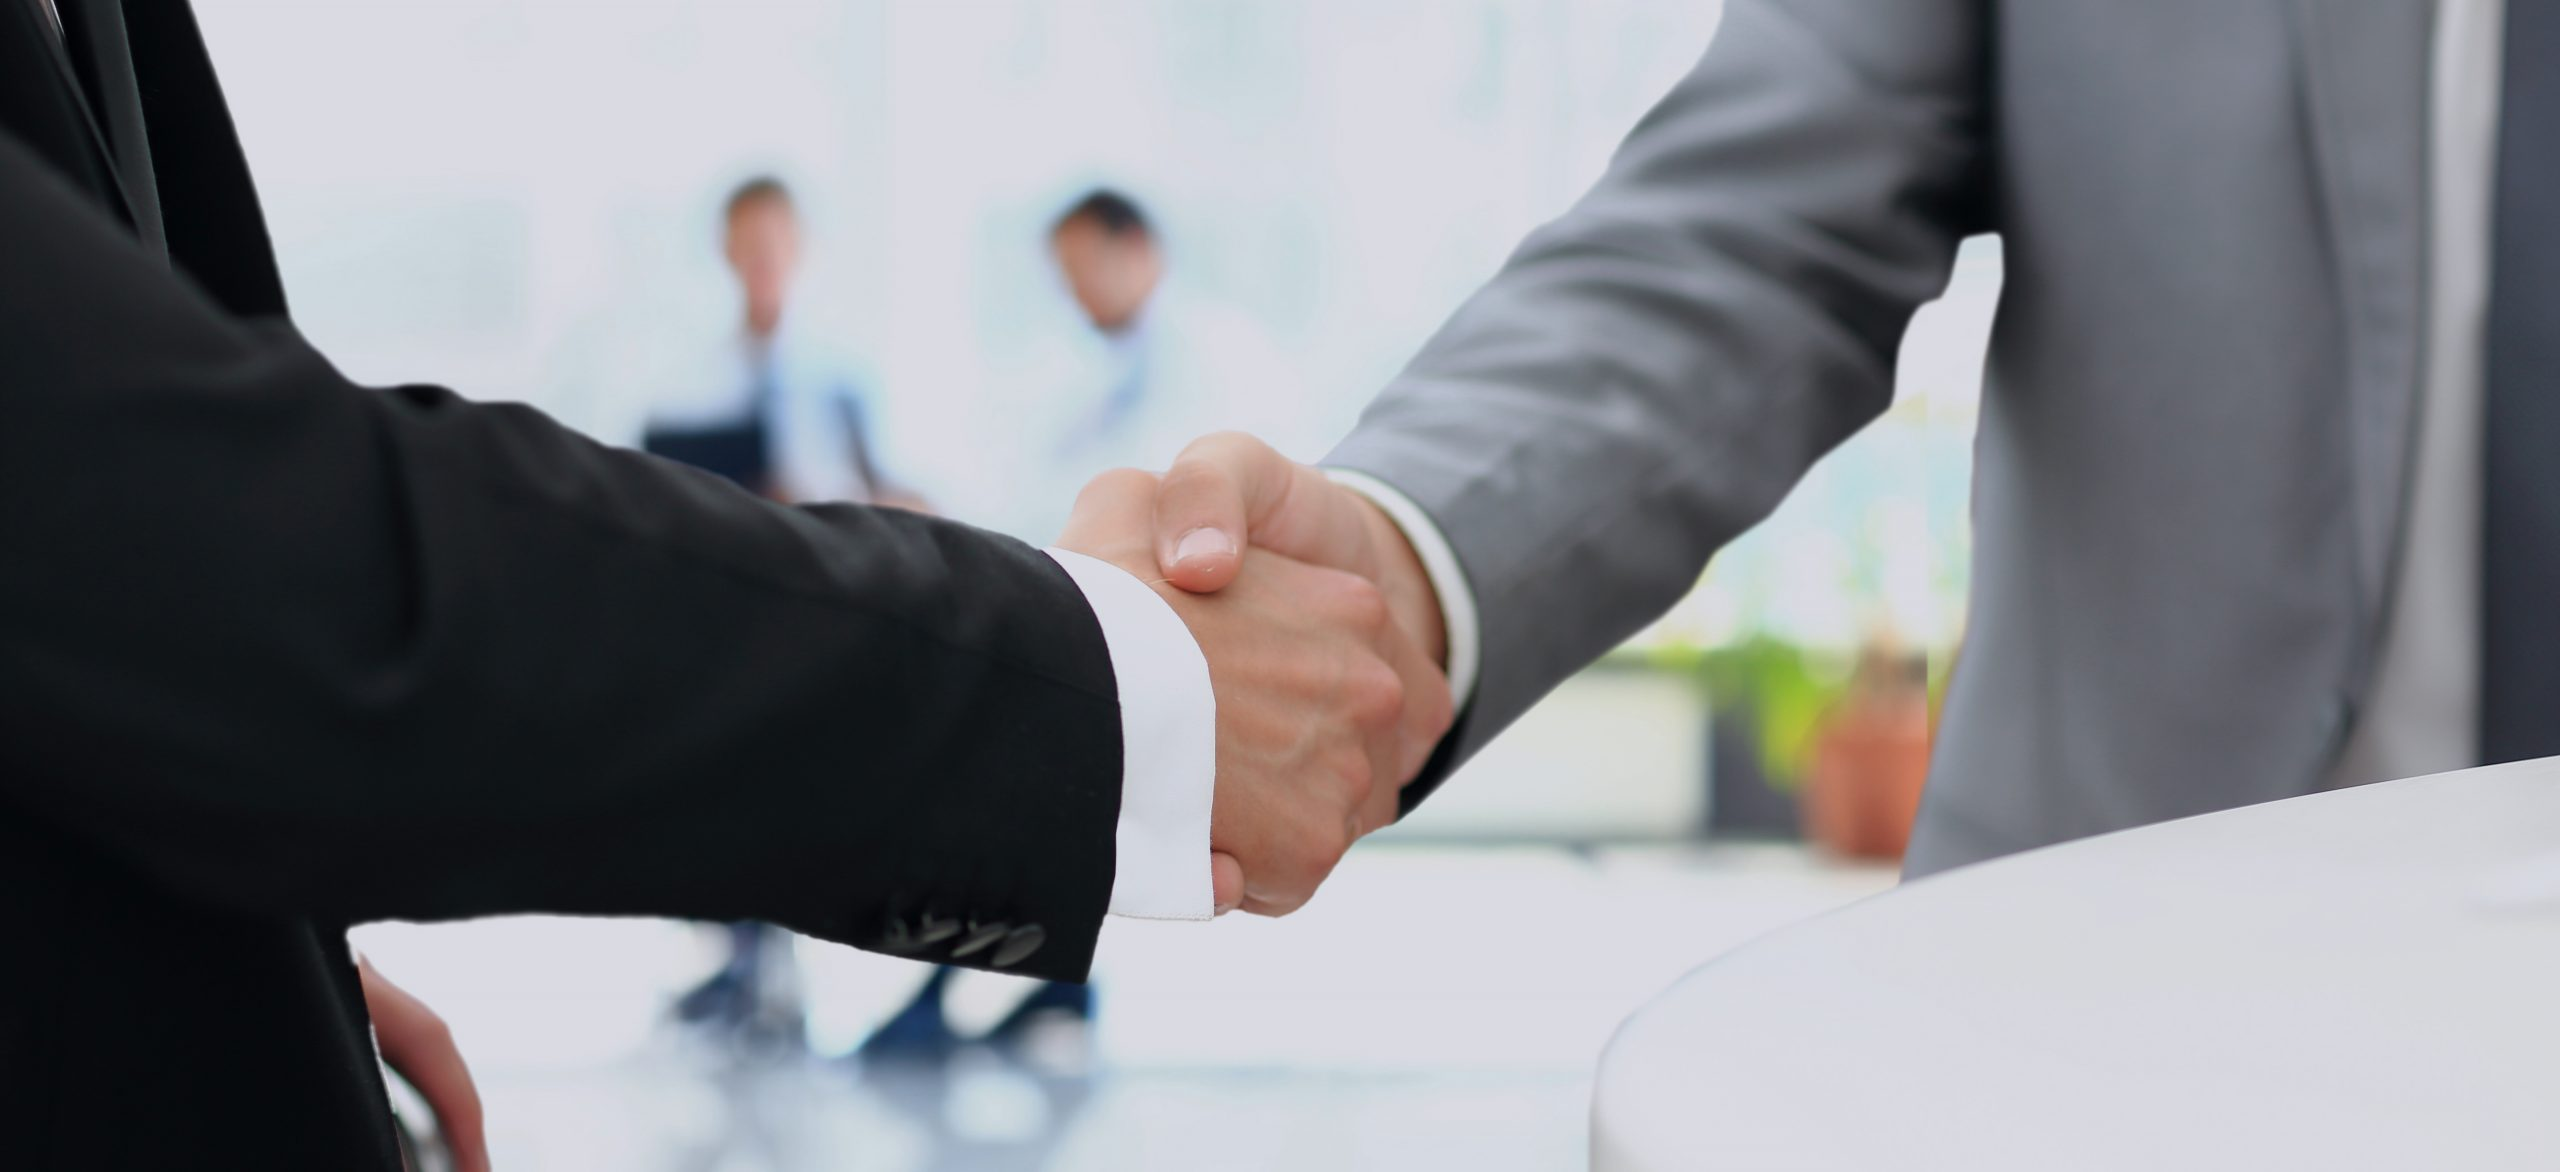 How to Create a Successful Business Partnership